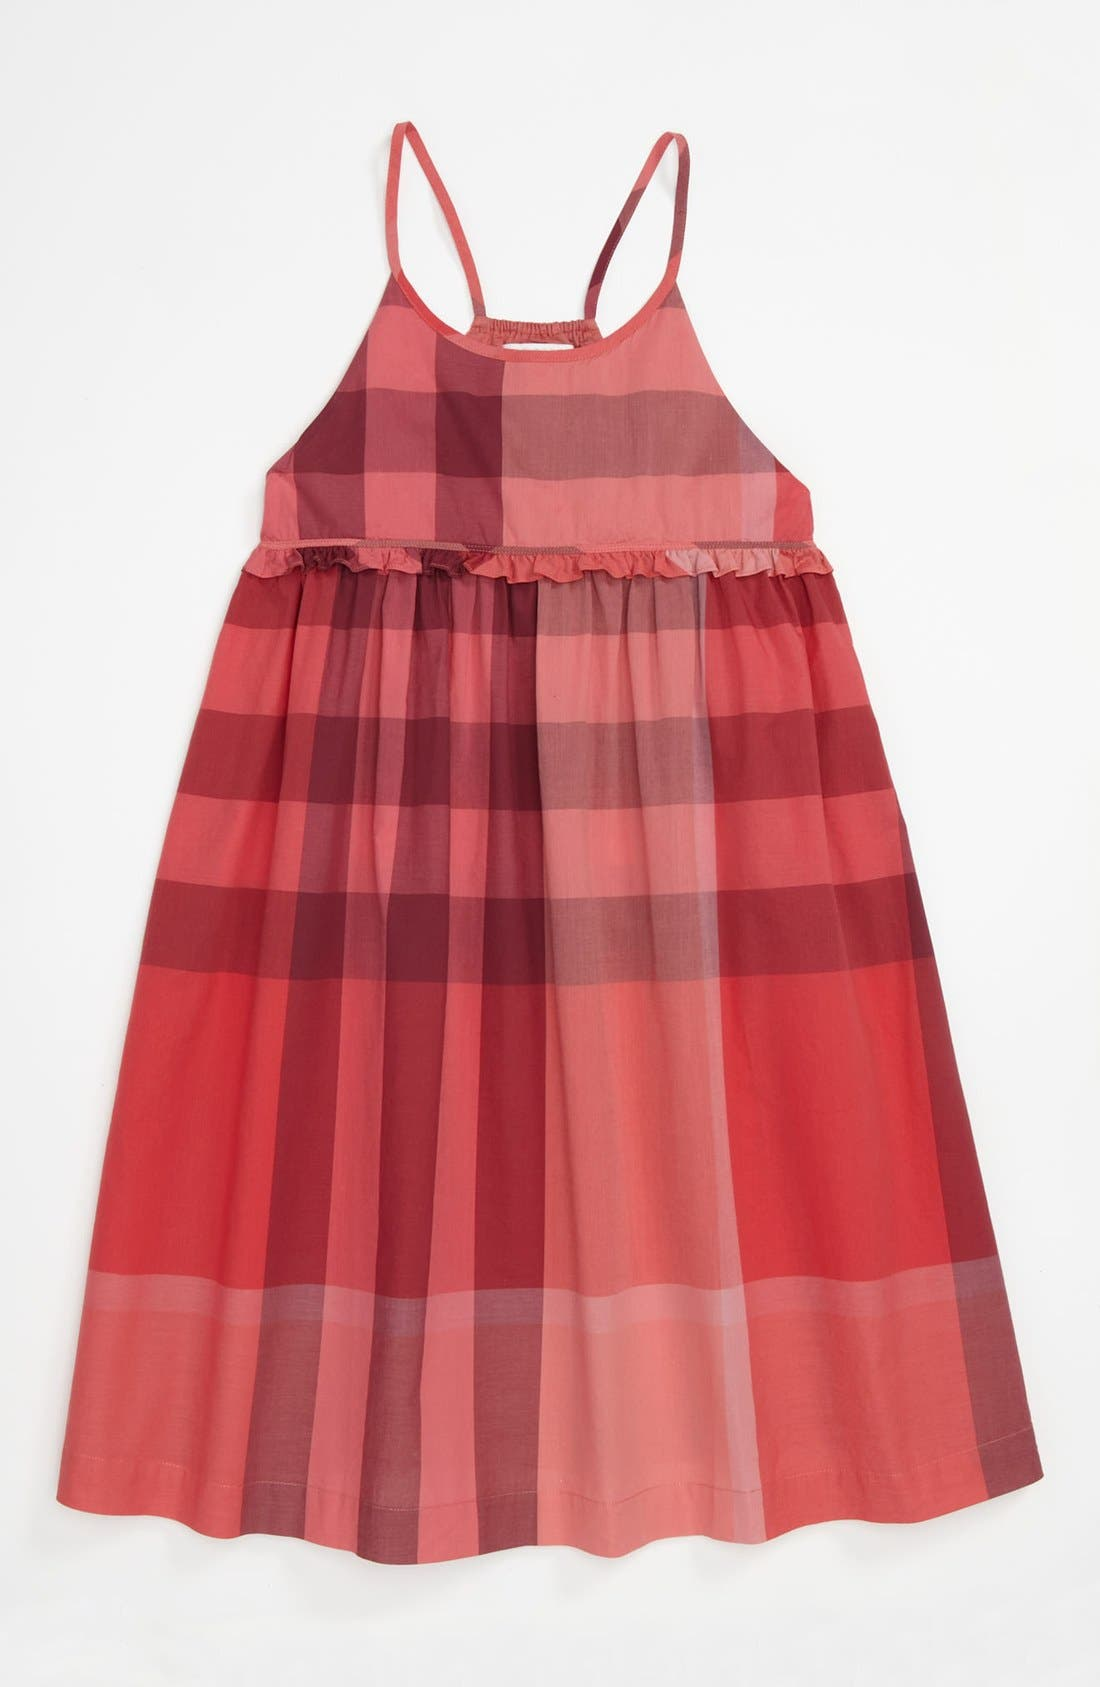 Alternate Image 1 Selected - Burberry 'Erica' Dress (Little Girls & Big Girls)